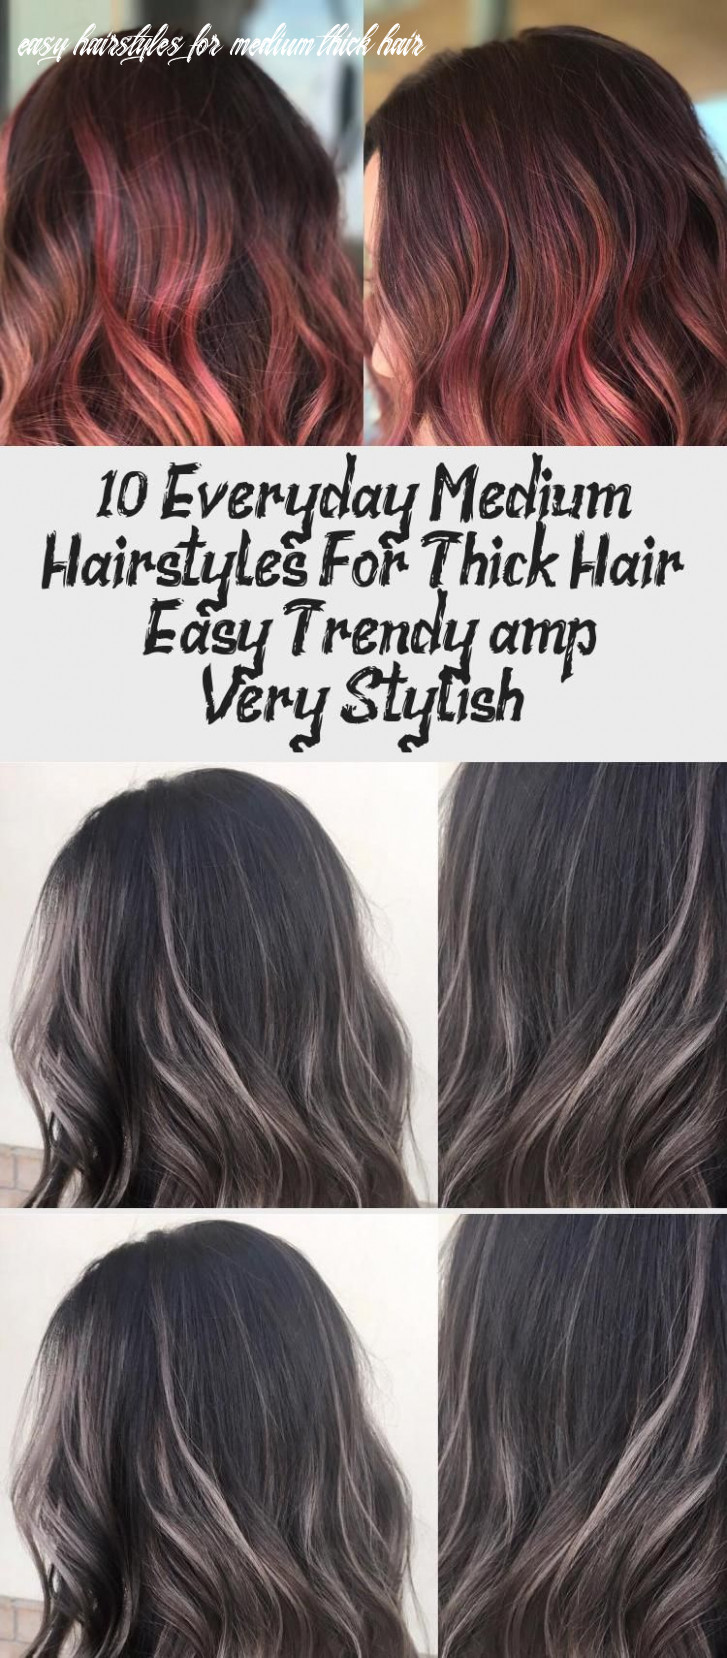 10 everyday medium hairstyles for thick hair – easy trendy & very